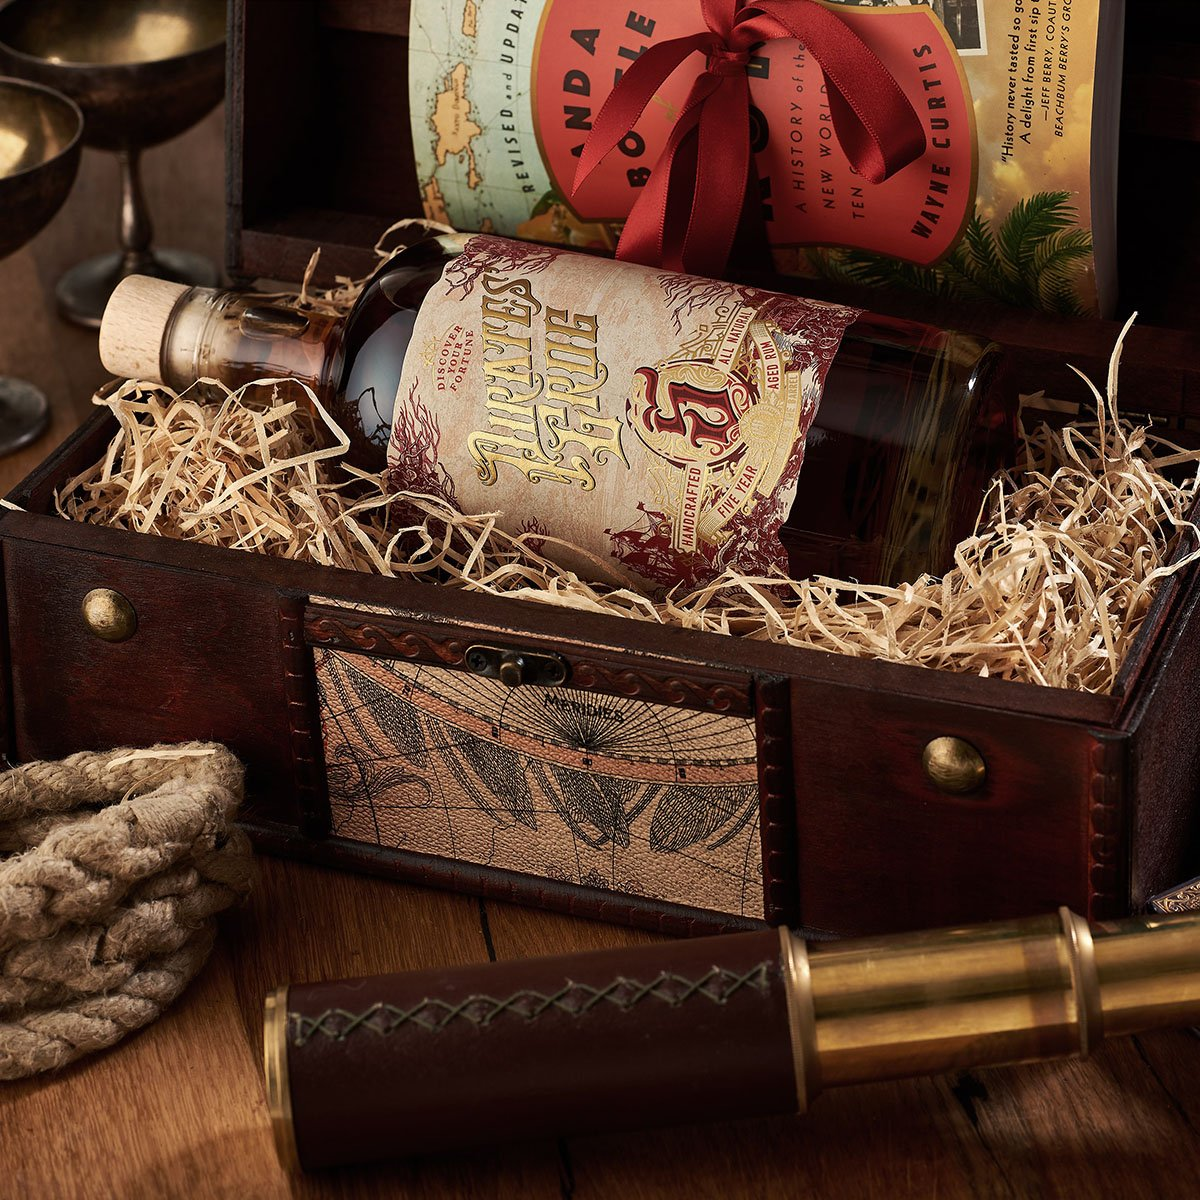 Pirate's Grog Rum Gift Chest - Pirate's Grog Rum